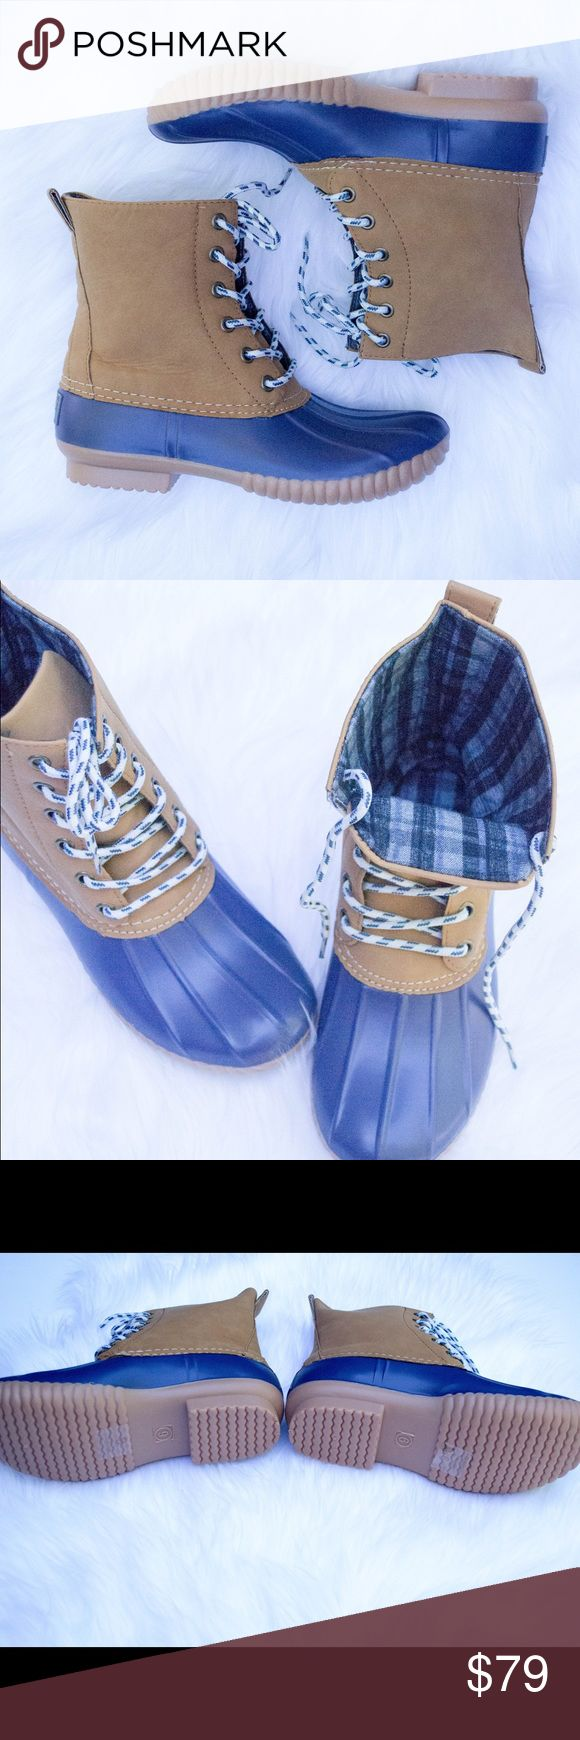 Matte Navy Duck Boots This listing is for matte navy. These are selling like crazy for fall  $79 each or $130 for 2 pairs. Other colors available  Select lining in each boot to keep you comfy. Stitched synthetic rubber sole for durability and grip  Price FIRM unless bundled. Kyoot Klothing Shoes Winter & Rain Boots